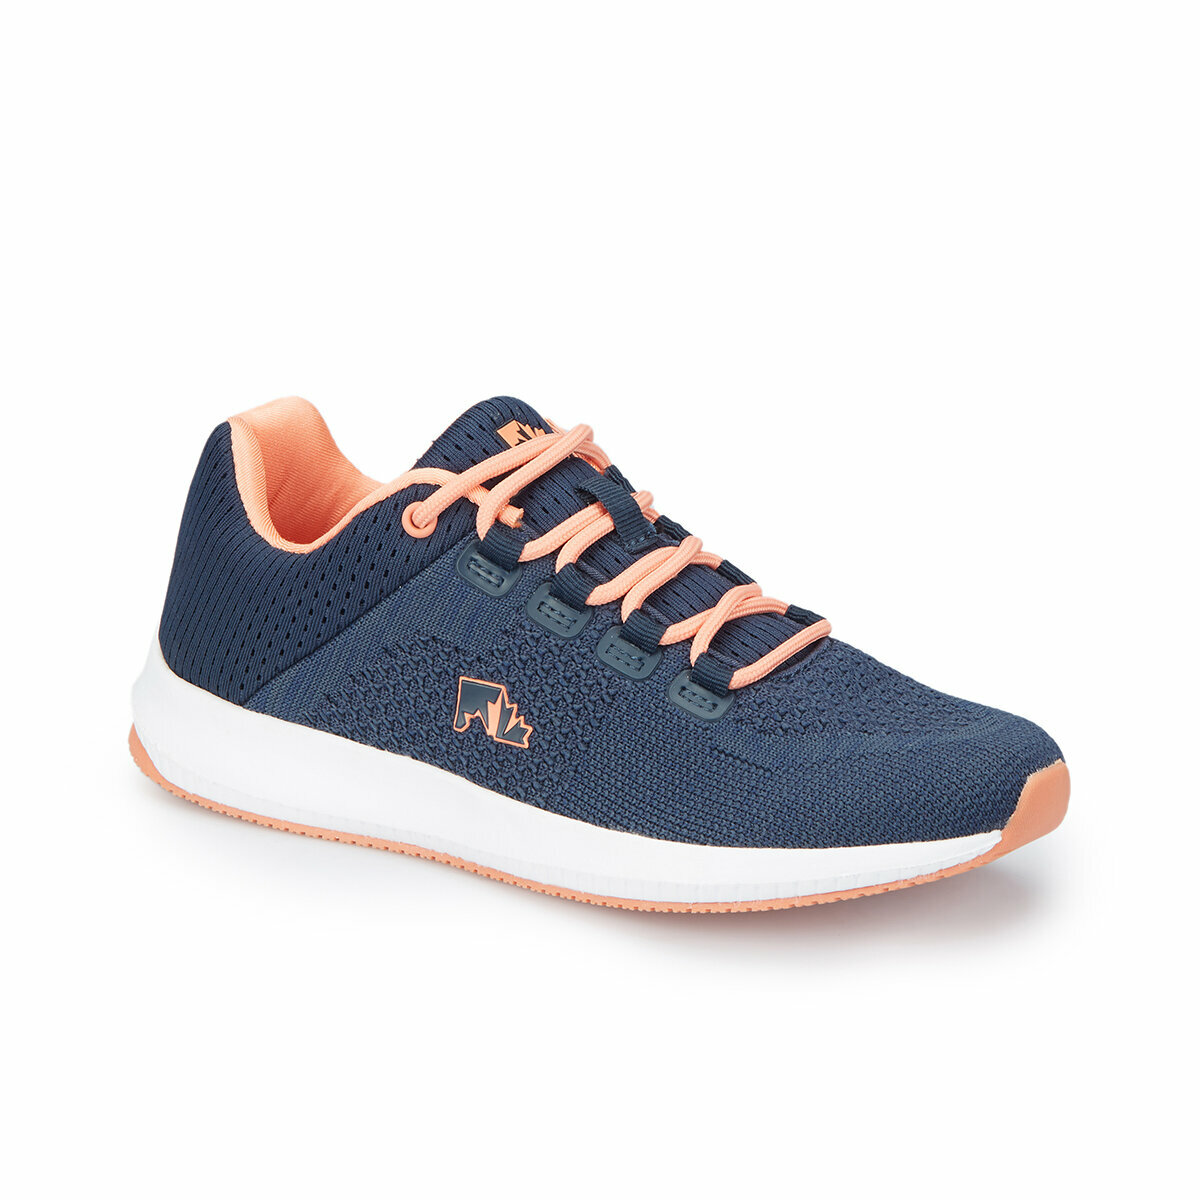 FLO ALE WMN Navy Blue Women 'S Sneaker Shoes LUMBERJACK